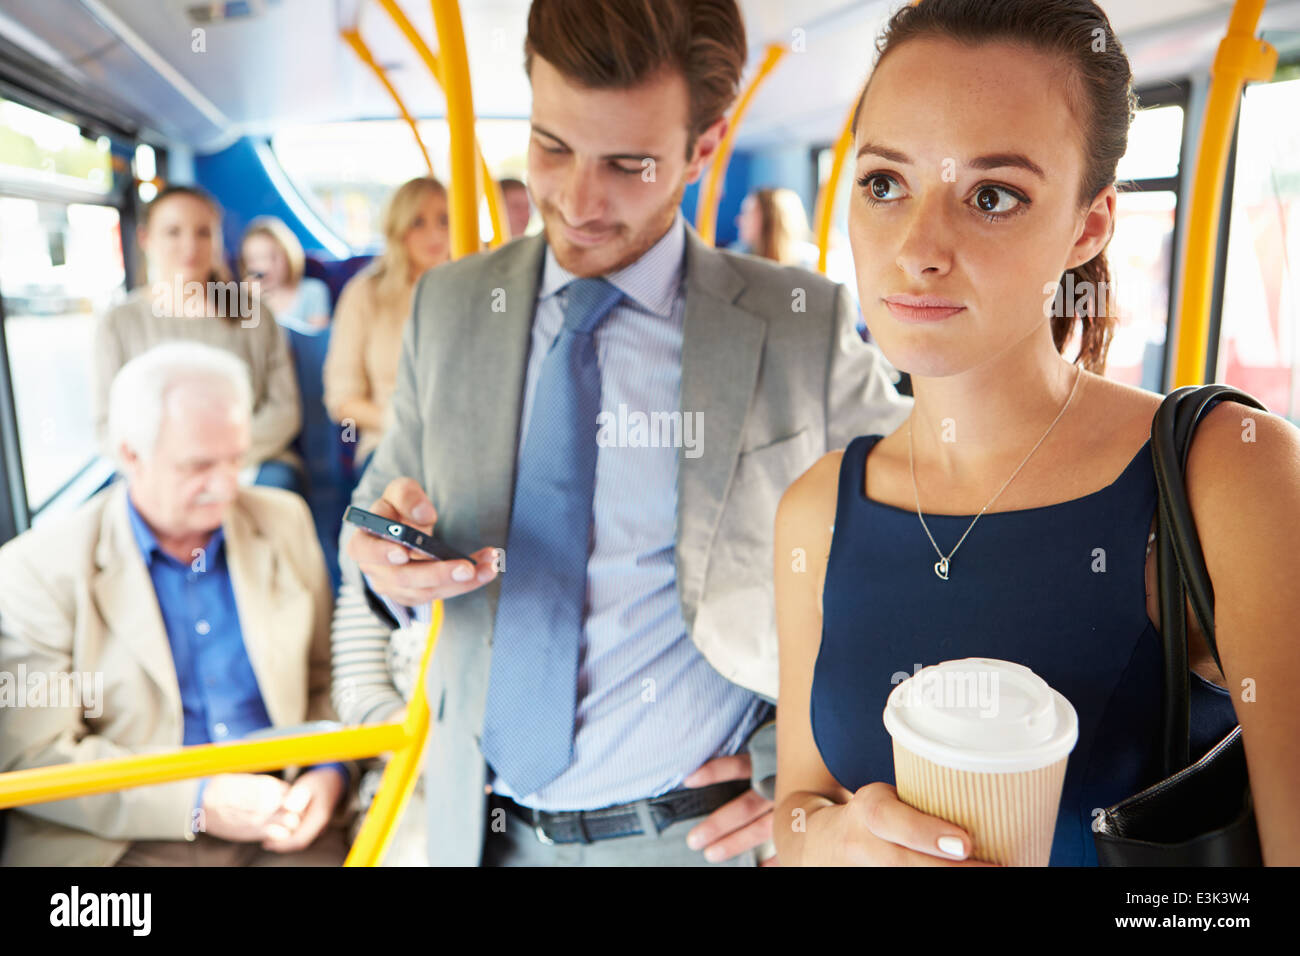 Passengers Standing On Busy Commuter Bus - Stock Image